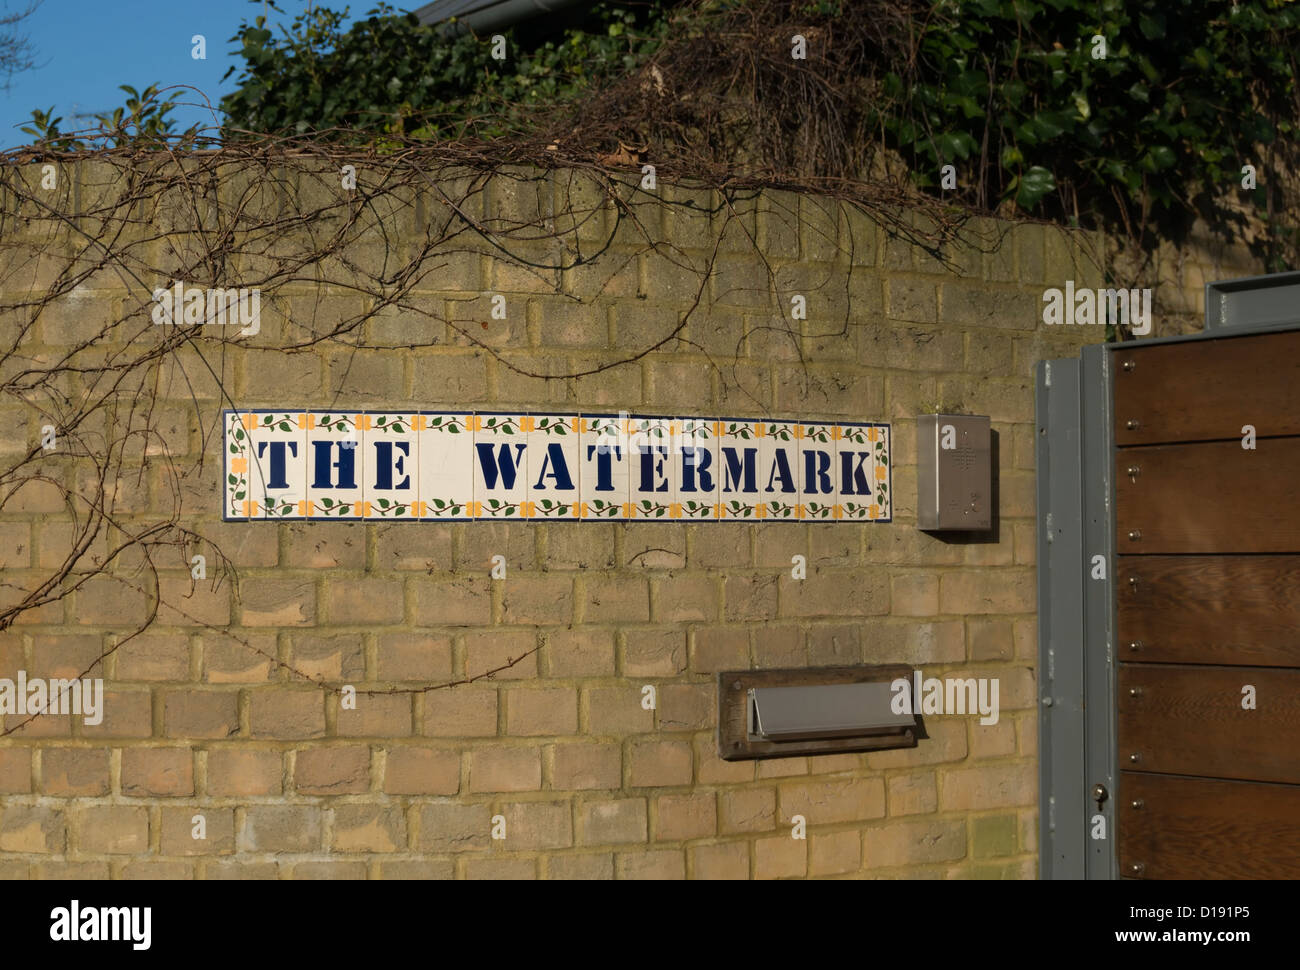 entrance with tiled name sign of the watermark, an architecturally innovative house of 1999, twickenham, middlesex, - Stock Image